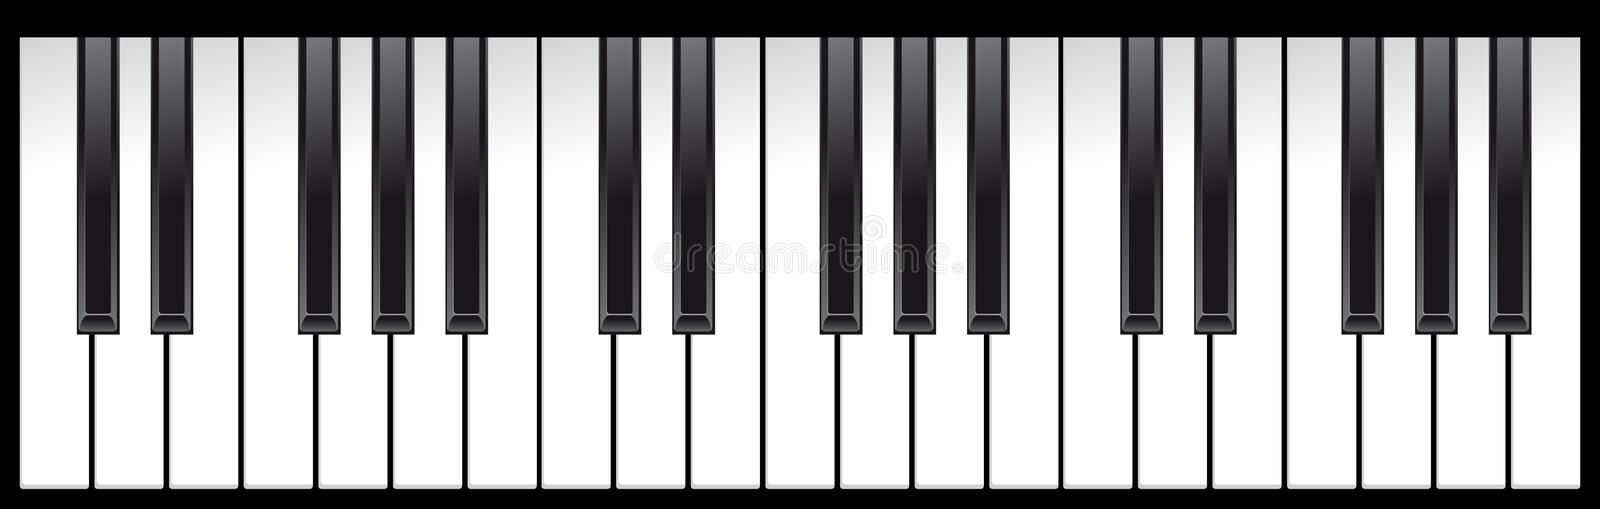 Tasti del piano illustrazione di stock